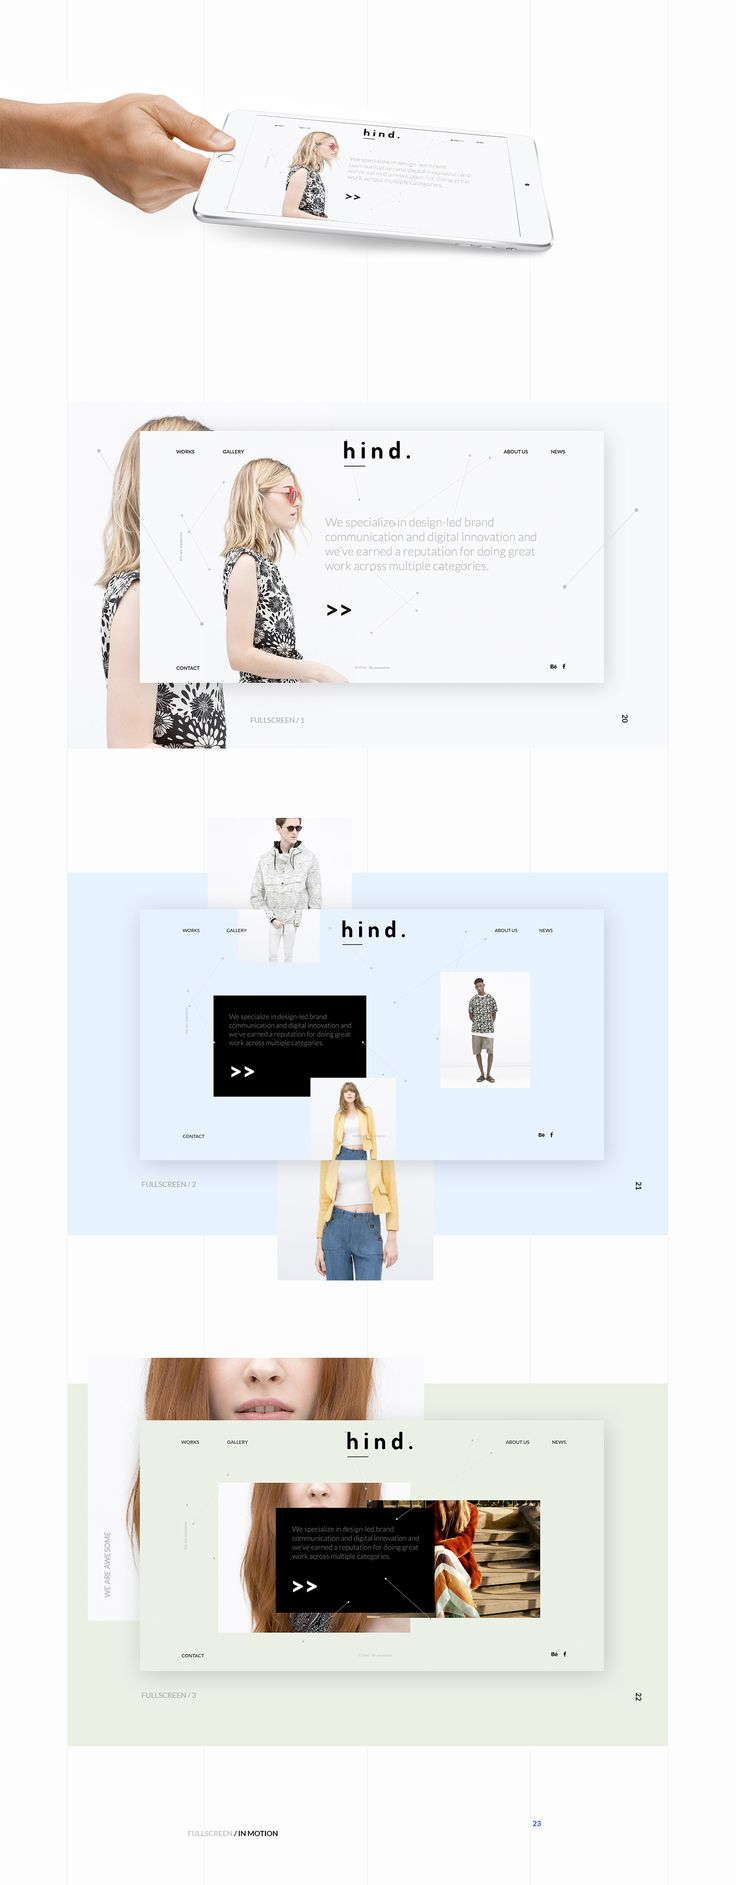 Hind on Behance